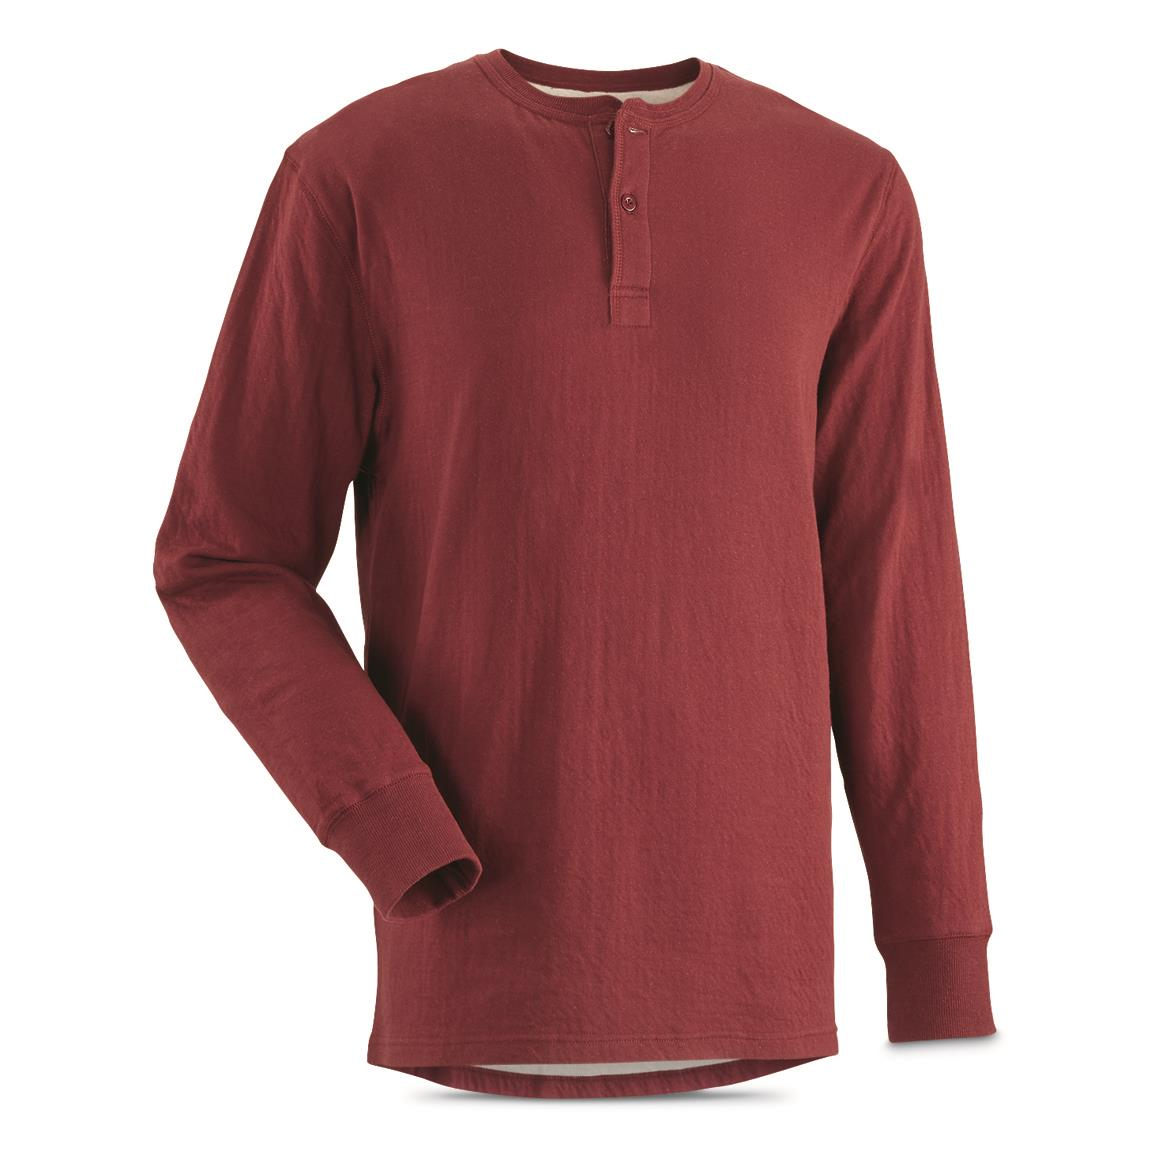 Guide Gear Men's Double-lined Long Sleeve Henley, Spiced Red